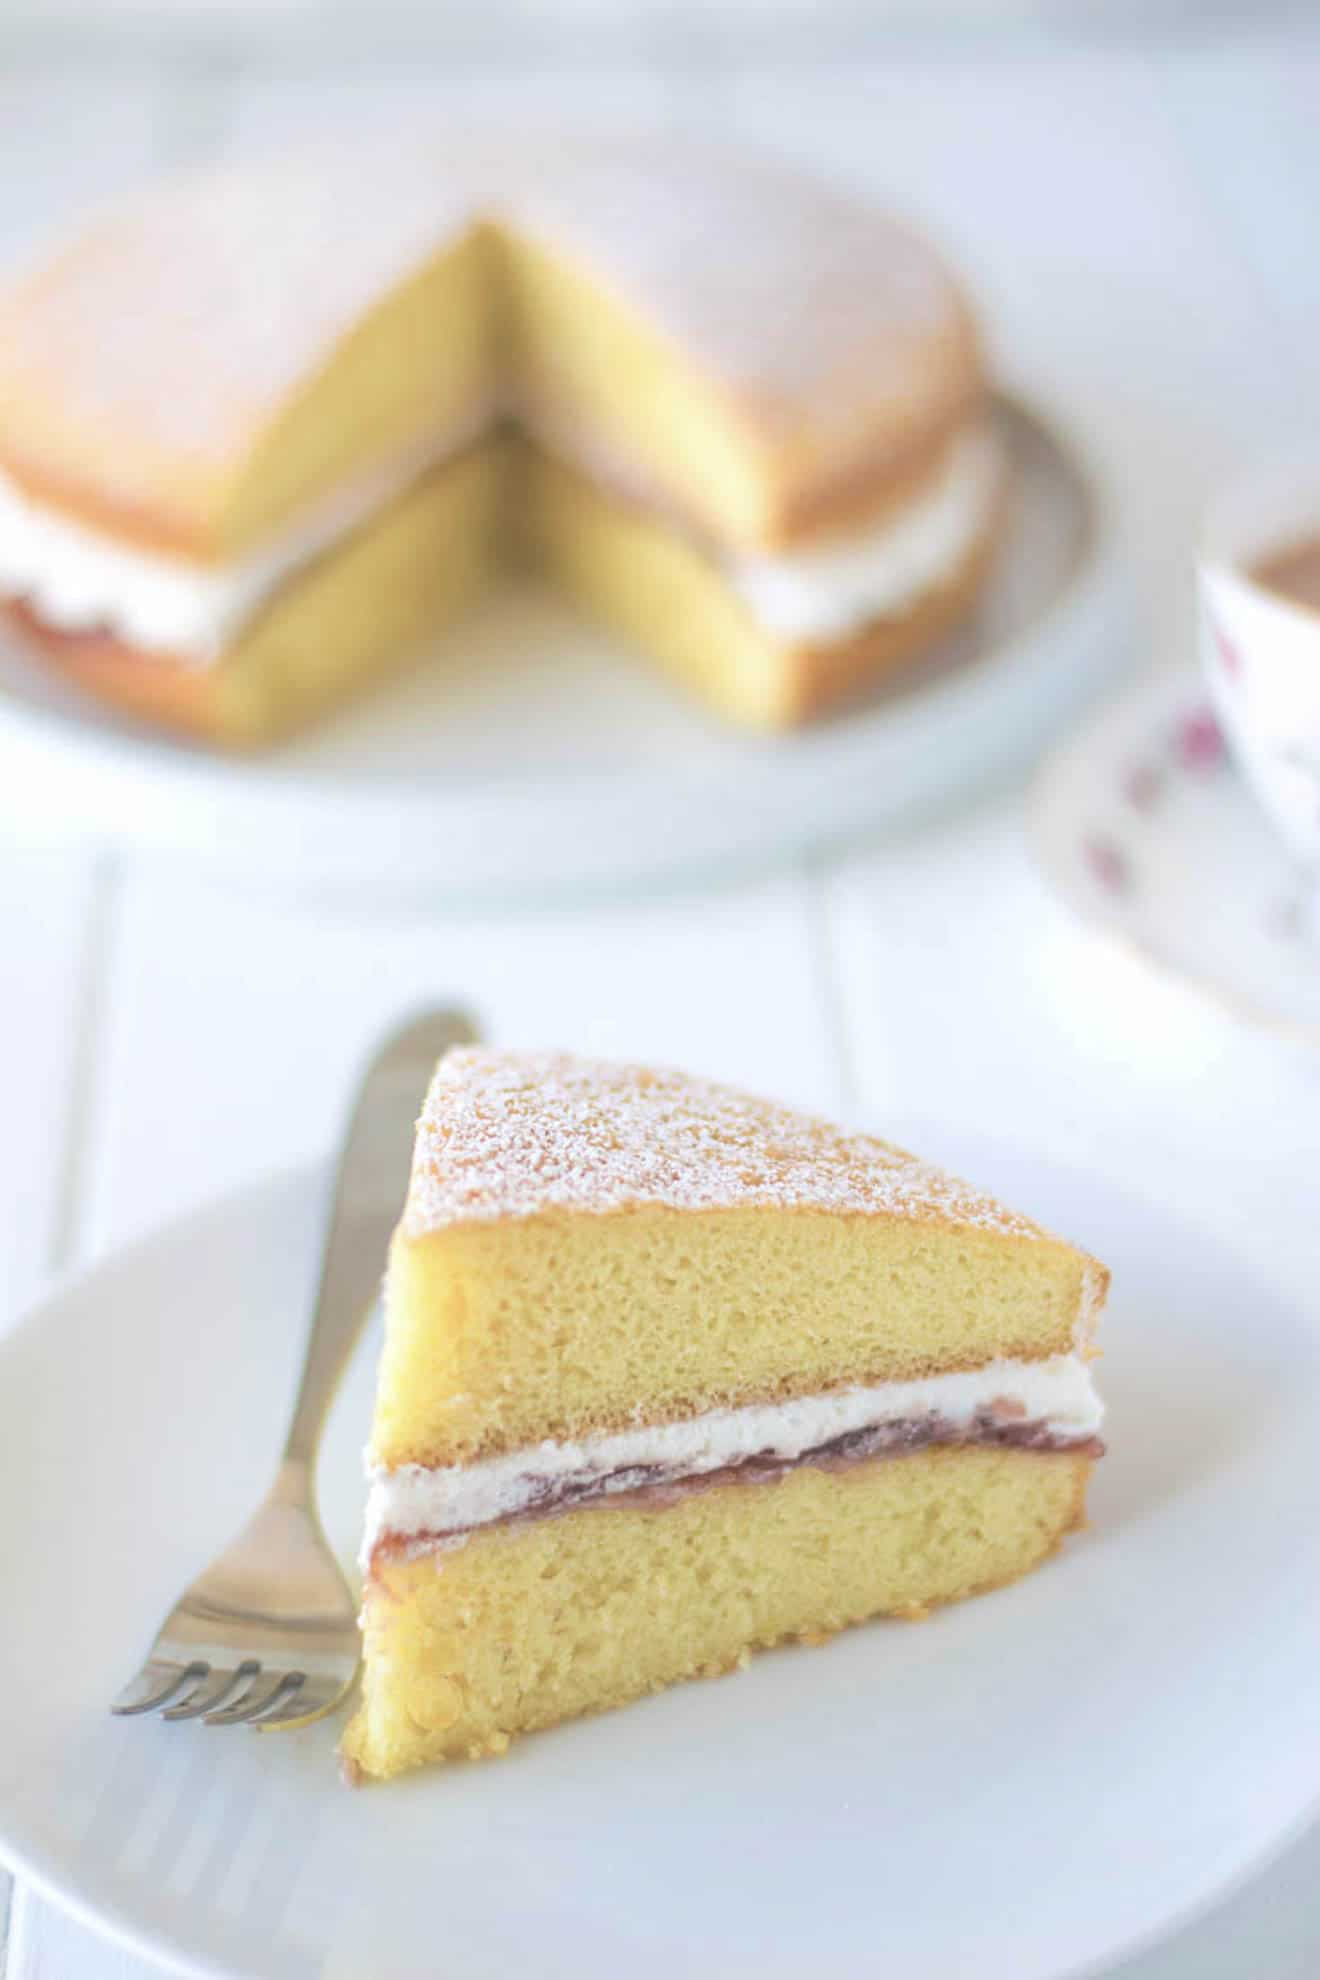 A perfect slice of cake on a white plate